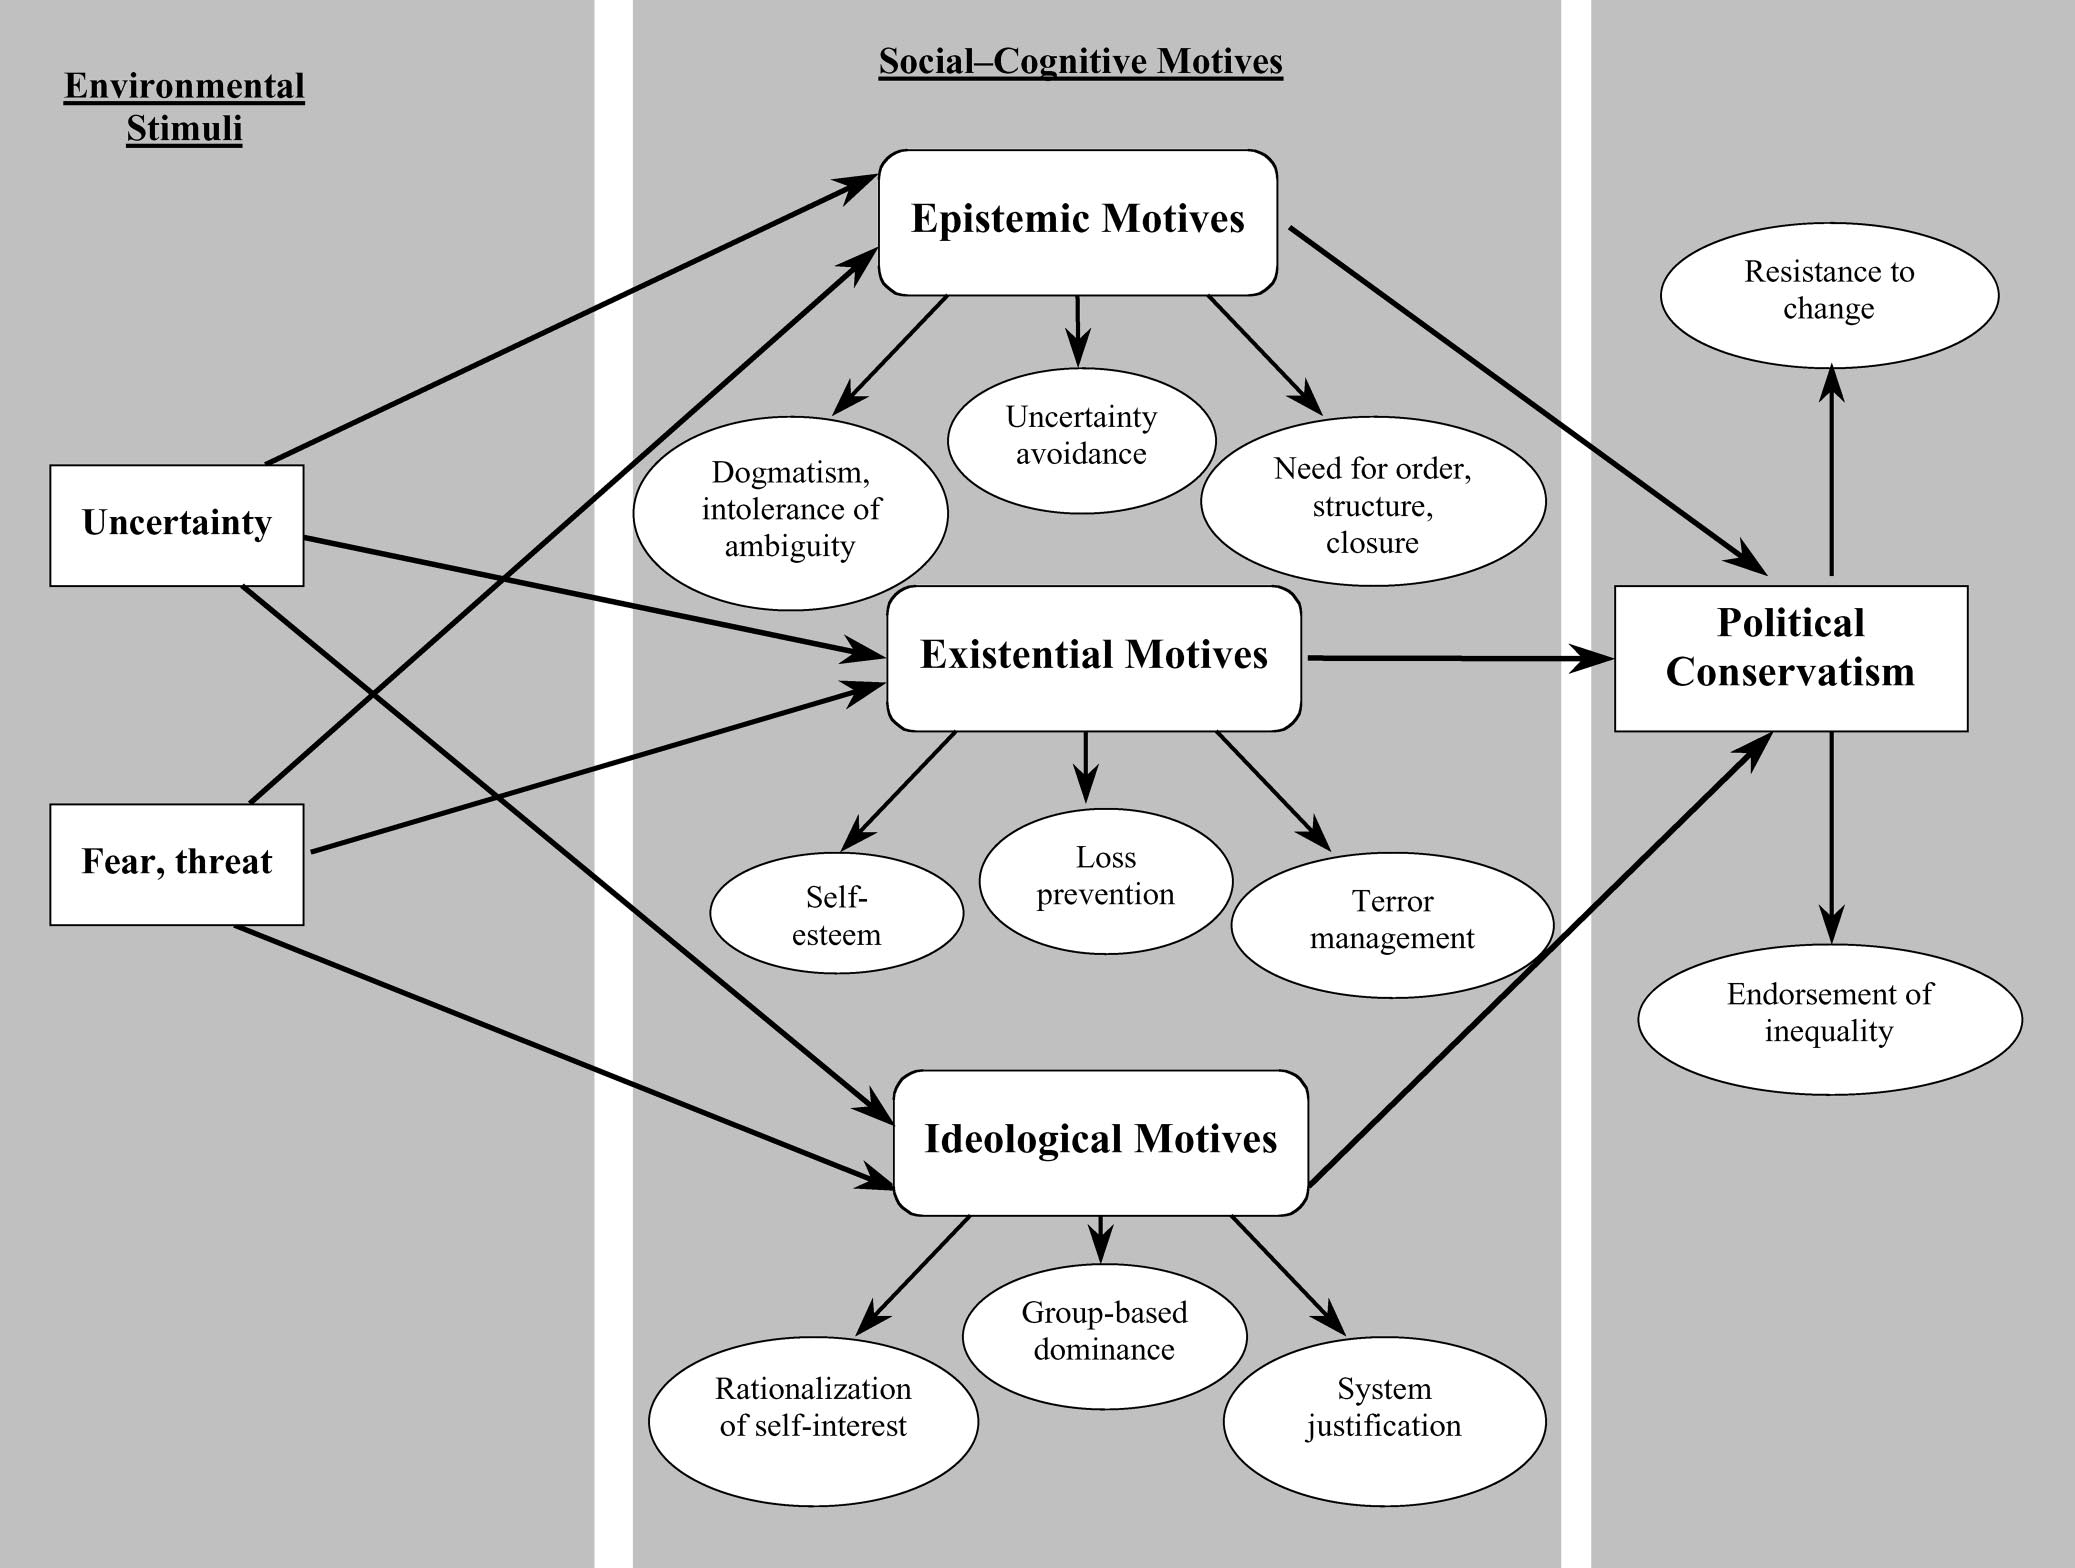 368 JOST, GLASER, KRUGLANSKI, AND SULLOWAY Figure 1. An integrative model of political conservatism as motivated social cognition. namely, resistance to change and support for inequality.